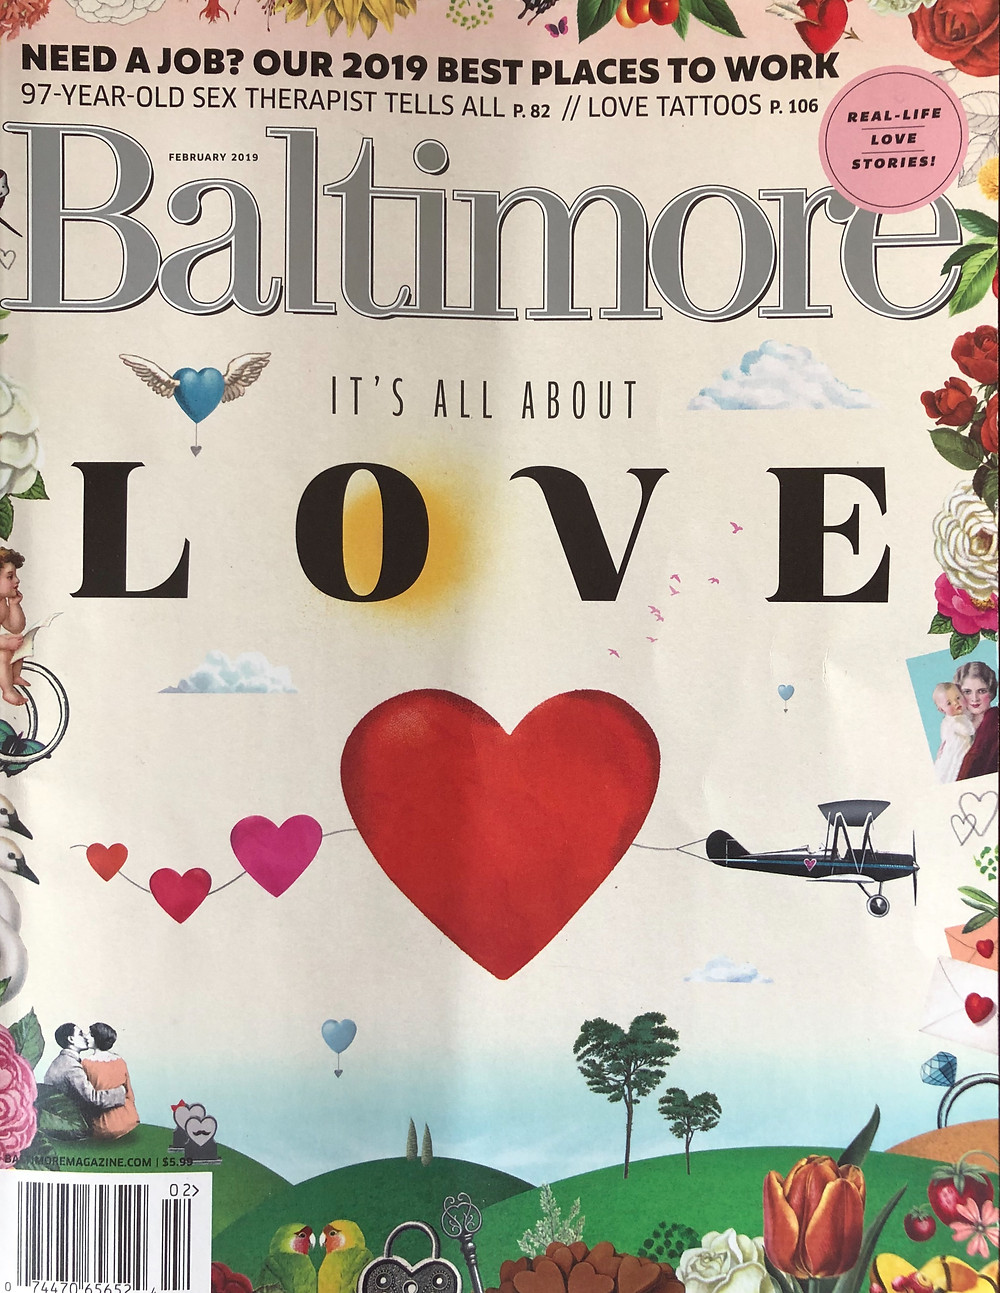 Baltimore Magazine, February 2019 cover